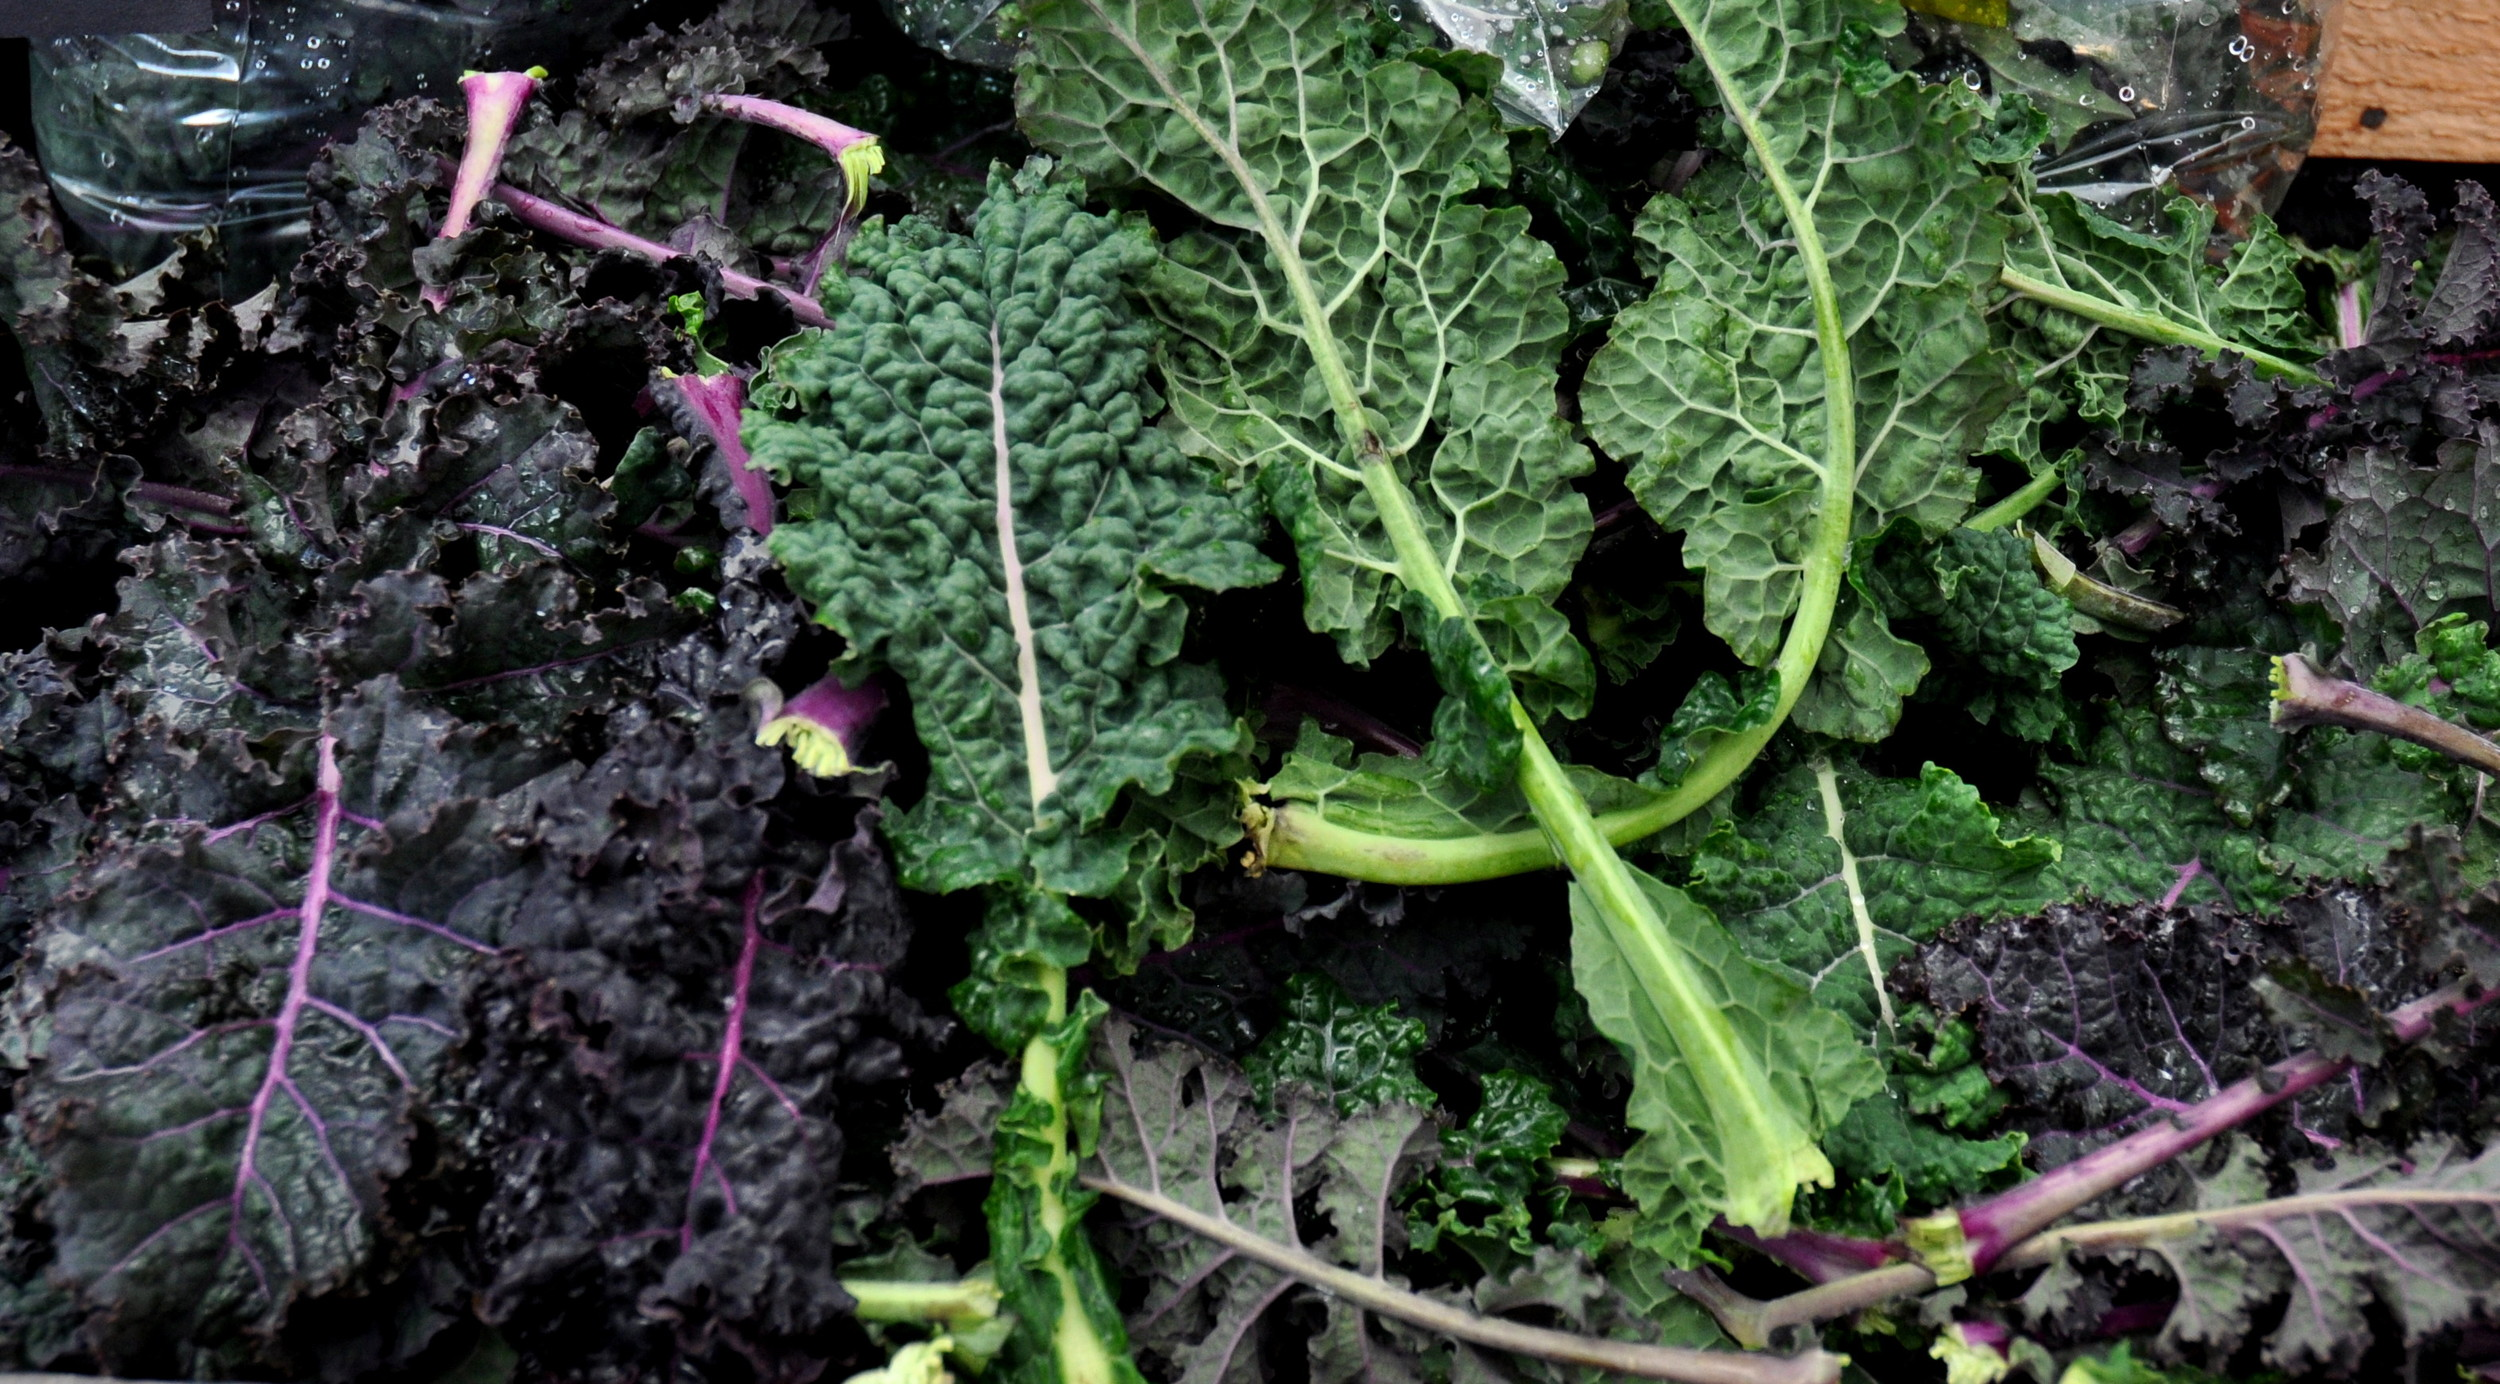 Kale from Kirsop Farm at Ballard Farmers Market. Copyright Zachary D. Lyons.